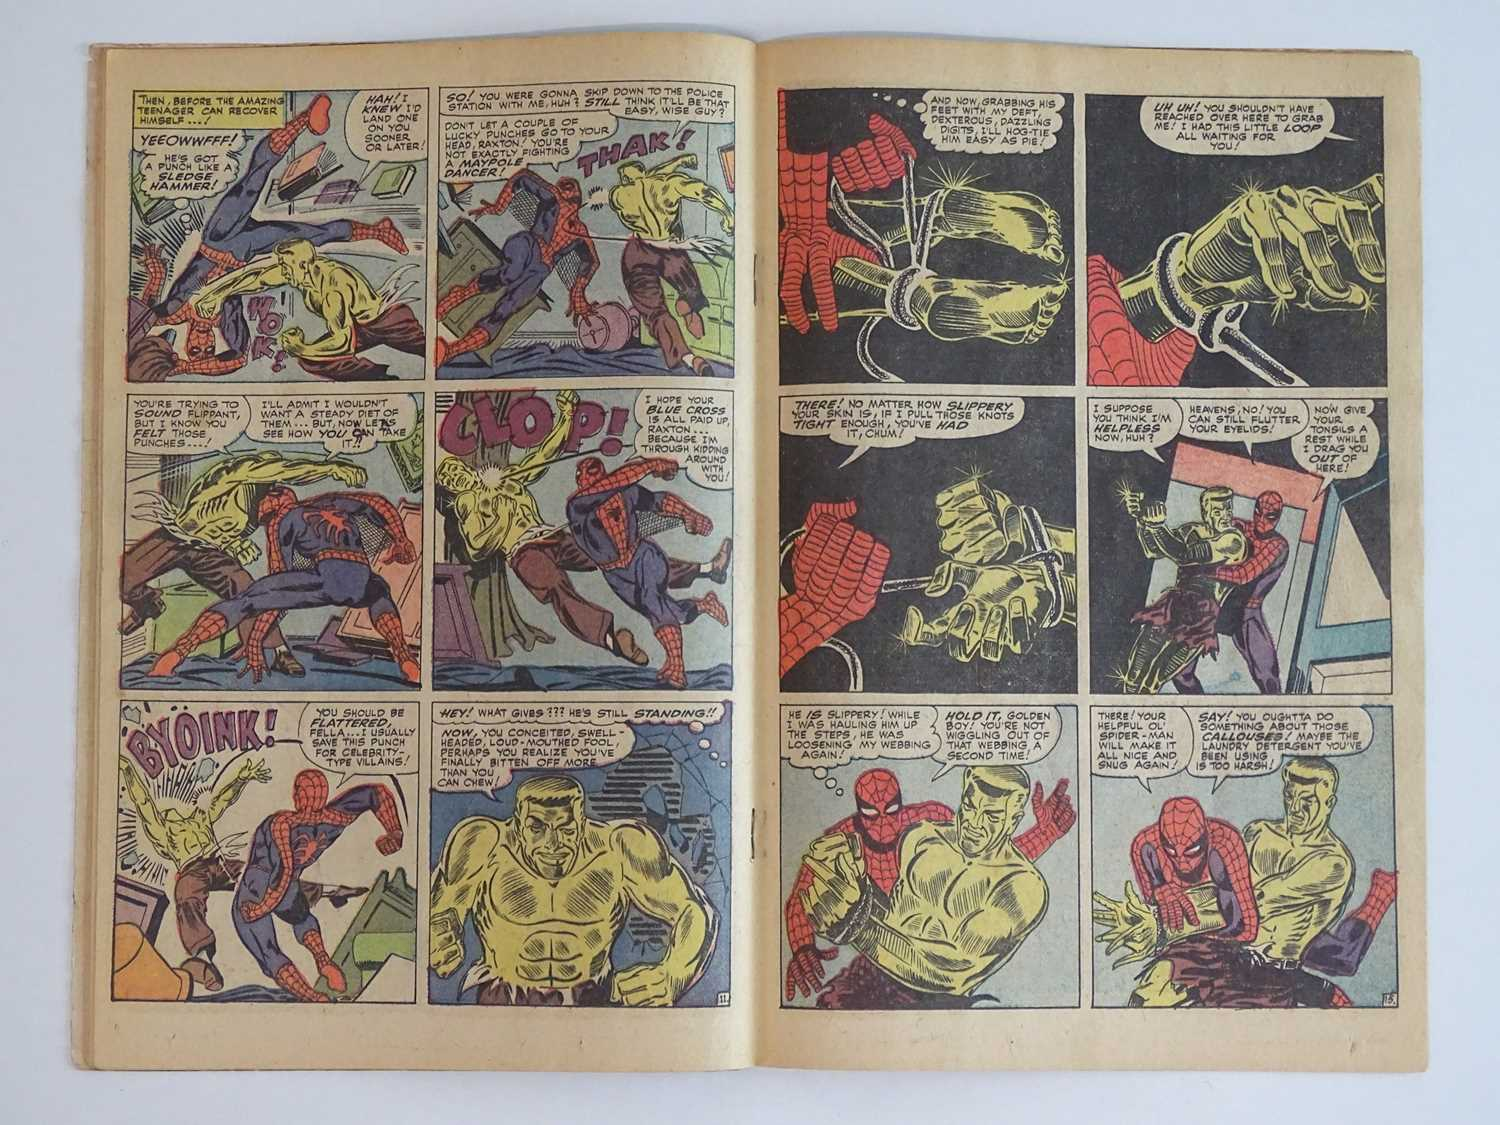 AMAZING SPIDER-MAN #28 - (1965 - MARVEL) - Origin and First appearance of Molten Man + Peter - Image 5 of 9